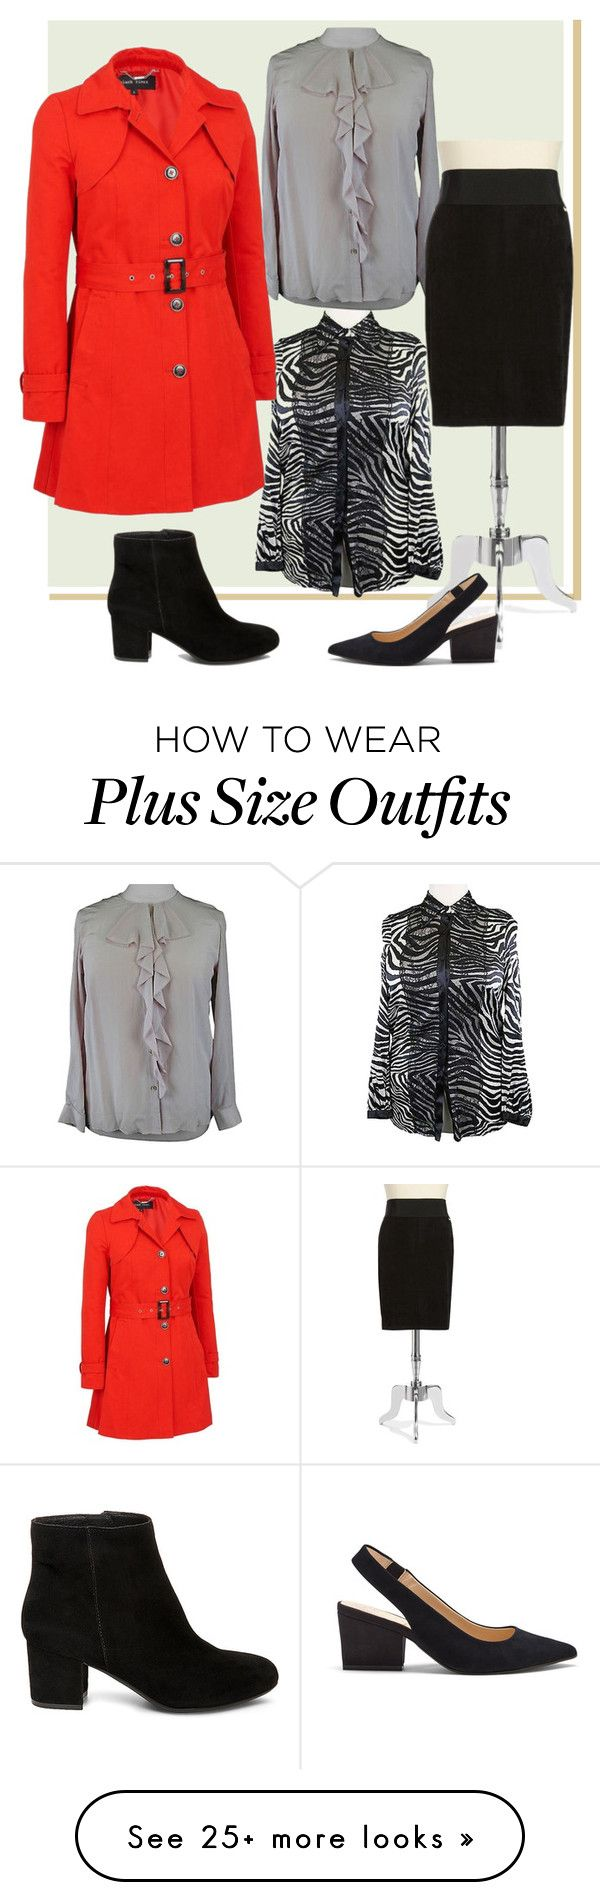 """Plus Size Business Wear"" by dundiddit on Polyvore featuring Marina Rinaldi, Calvin Klein, Sole Society, Steve Madden and plus size clothing"